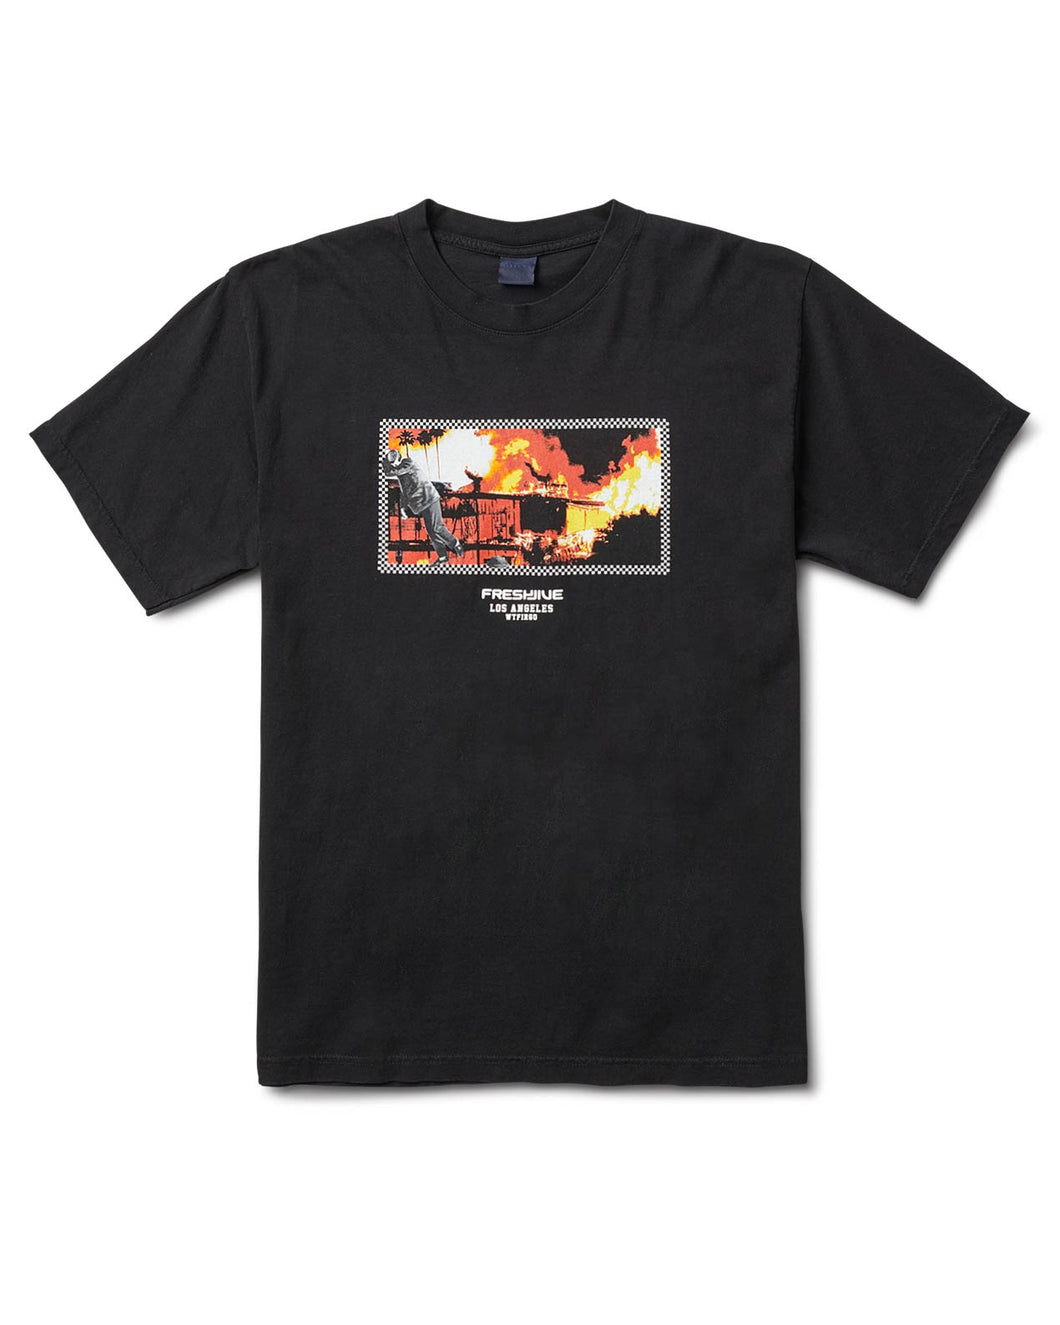 L.A. On Fire Tee Black